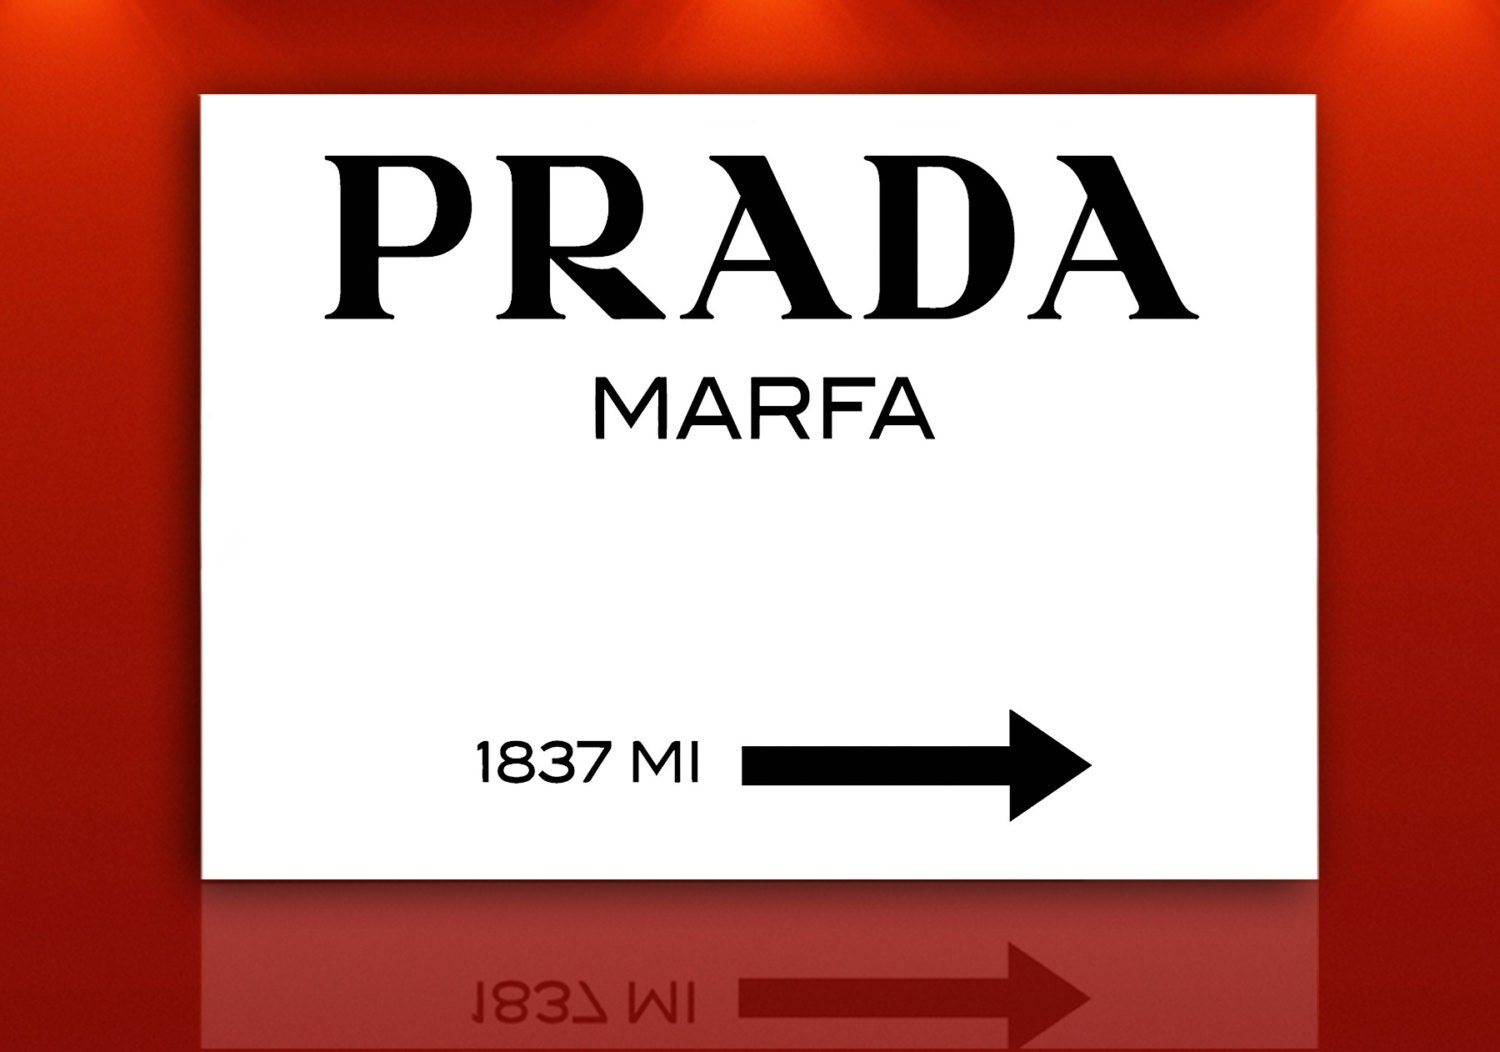 80 x 60 cm rahmen prada marfa gossip girl print auf leinwand. Black Bedroom Furniture Sets. Home Design Ideas